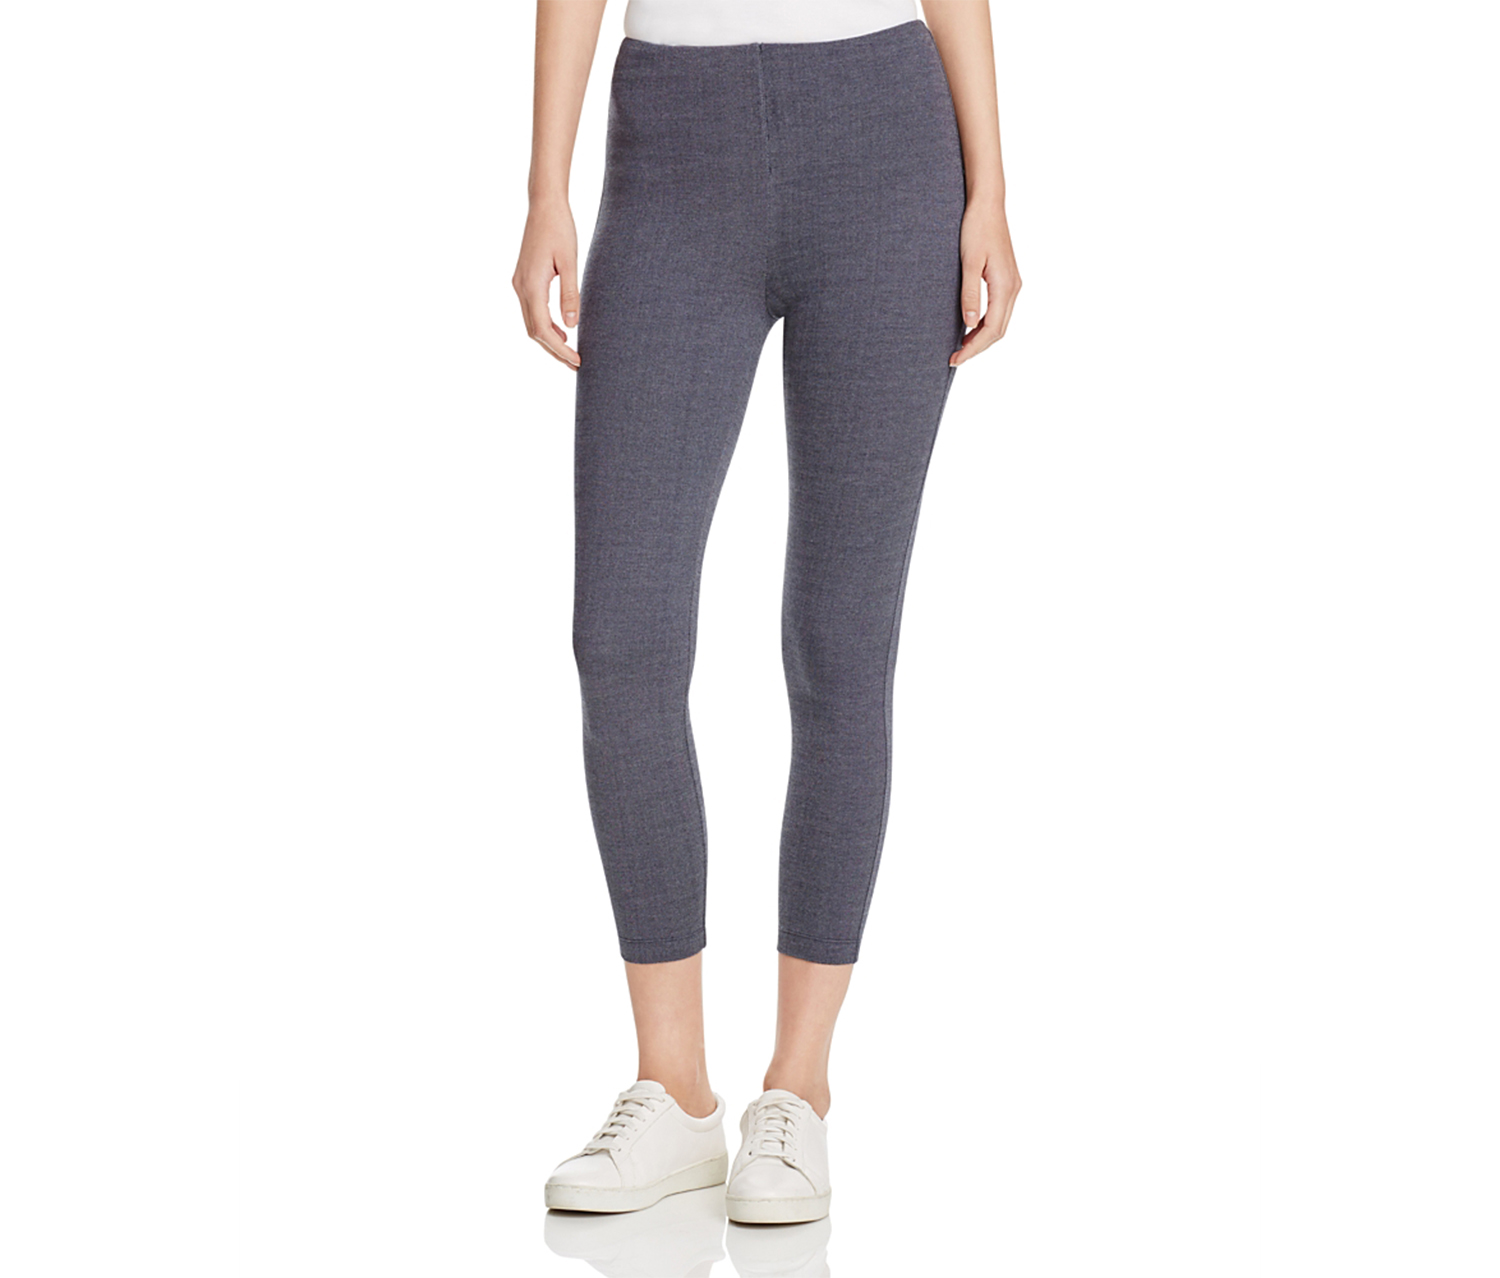 Lysse Women's High Waist Capri Leggings, Navy